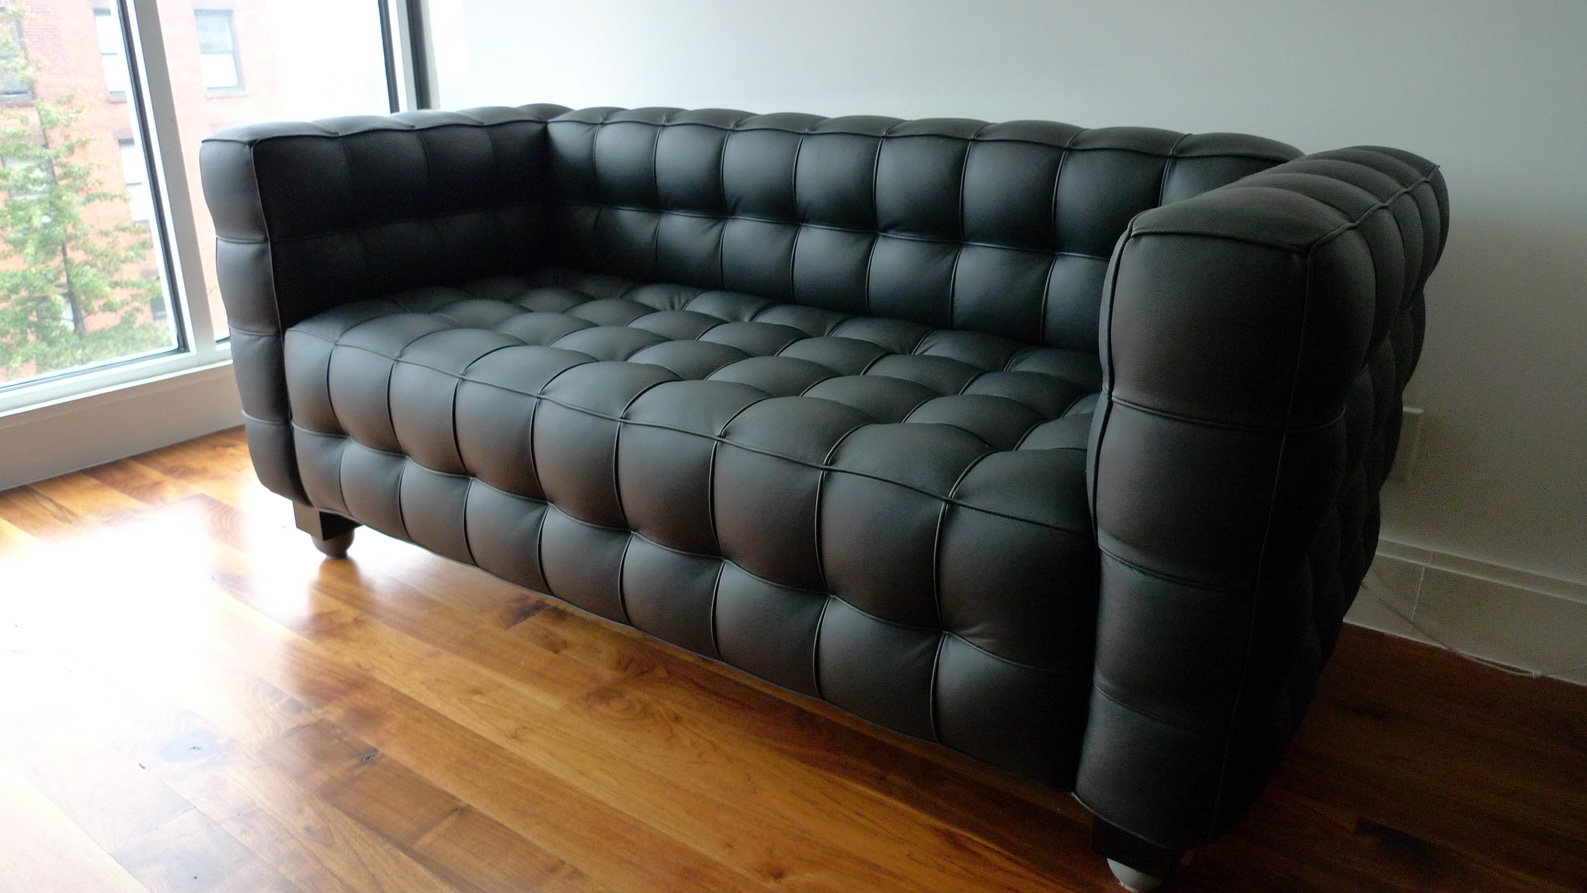 File Kubus sofa jpg   Wikimedia Commons